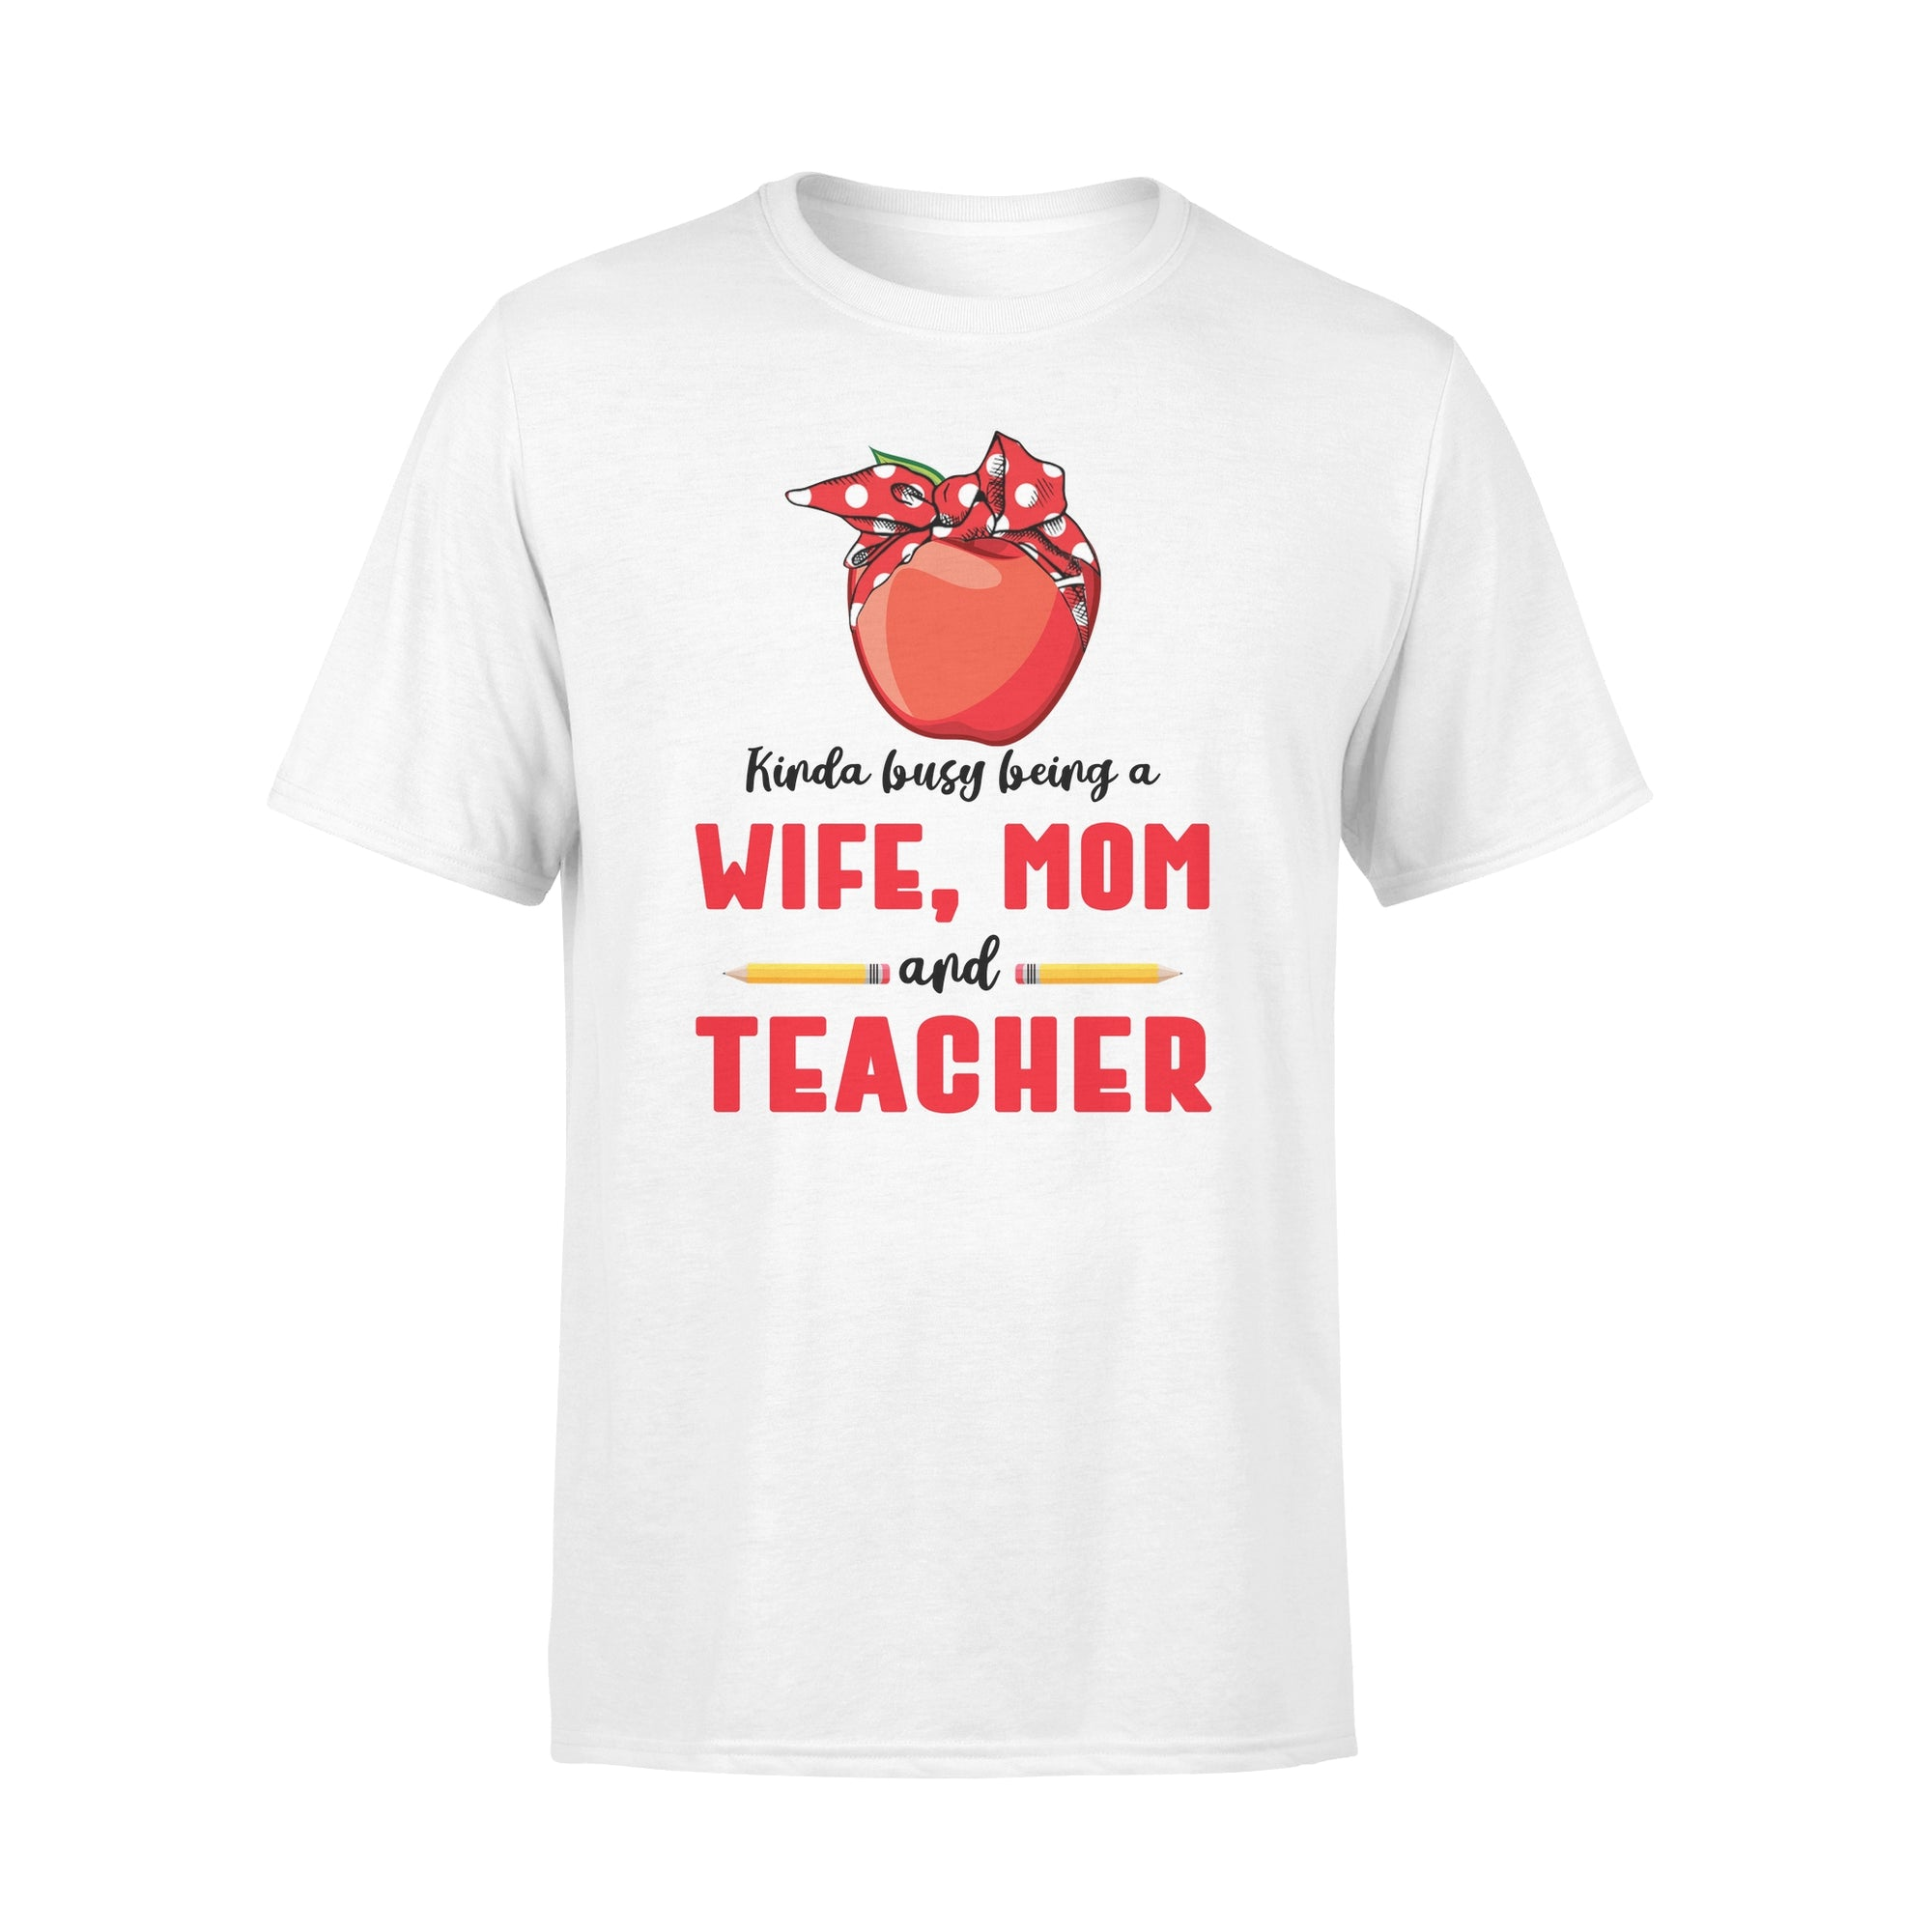 VIRA Premium Tee for awesome teachers & moms